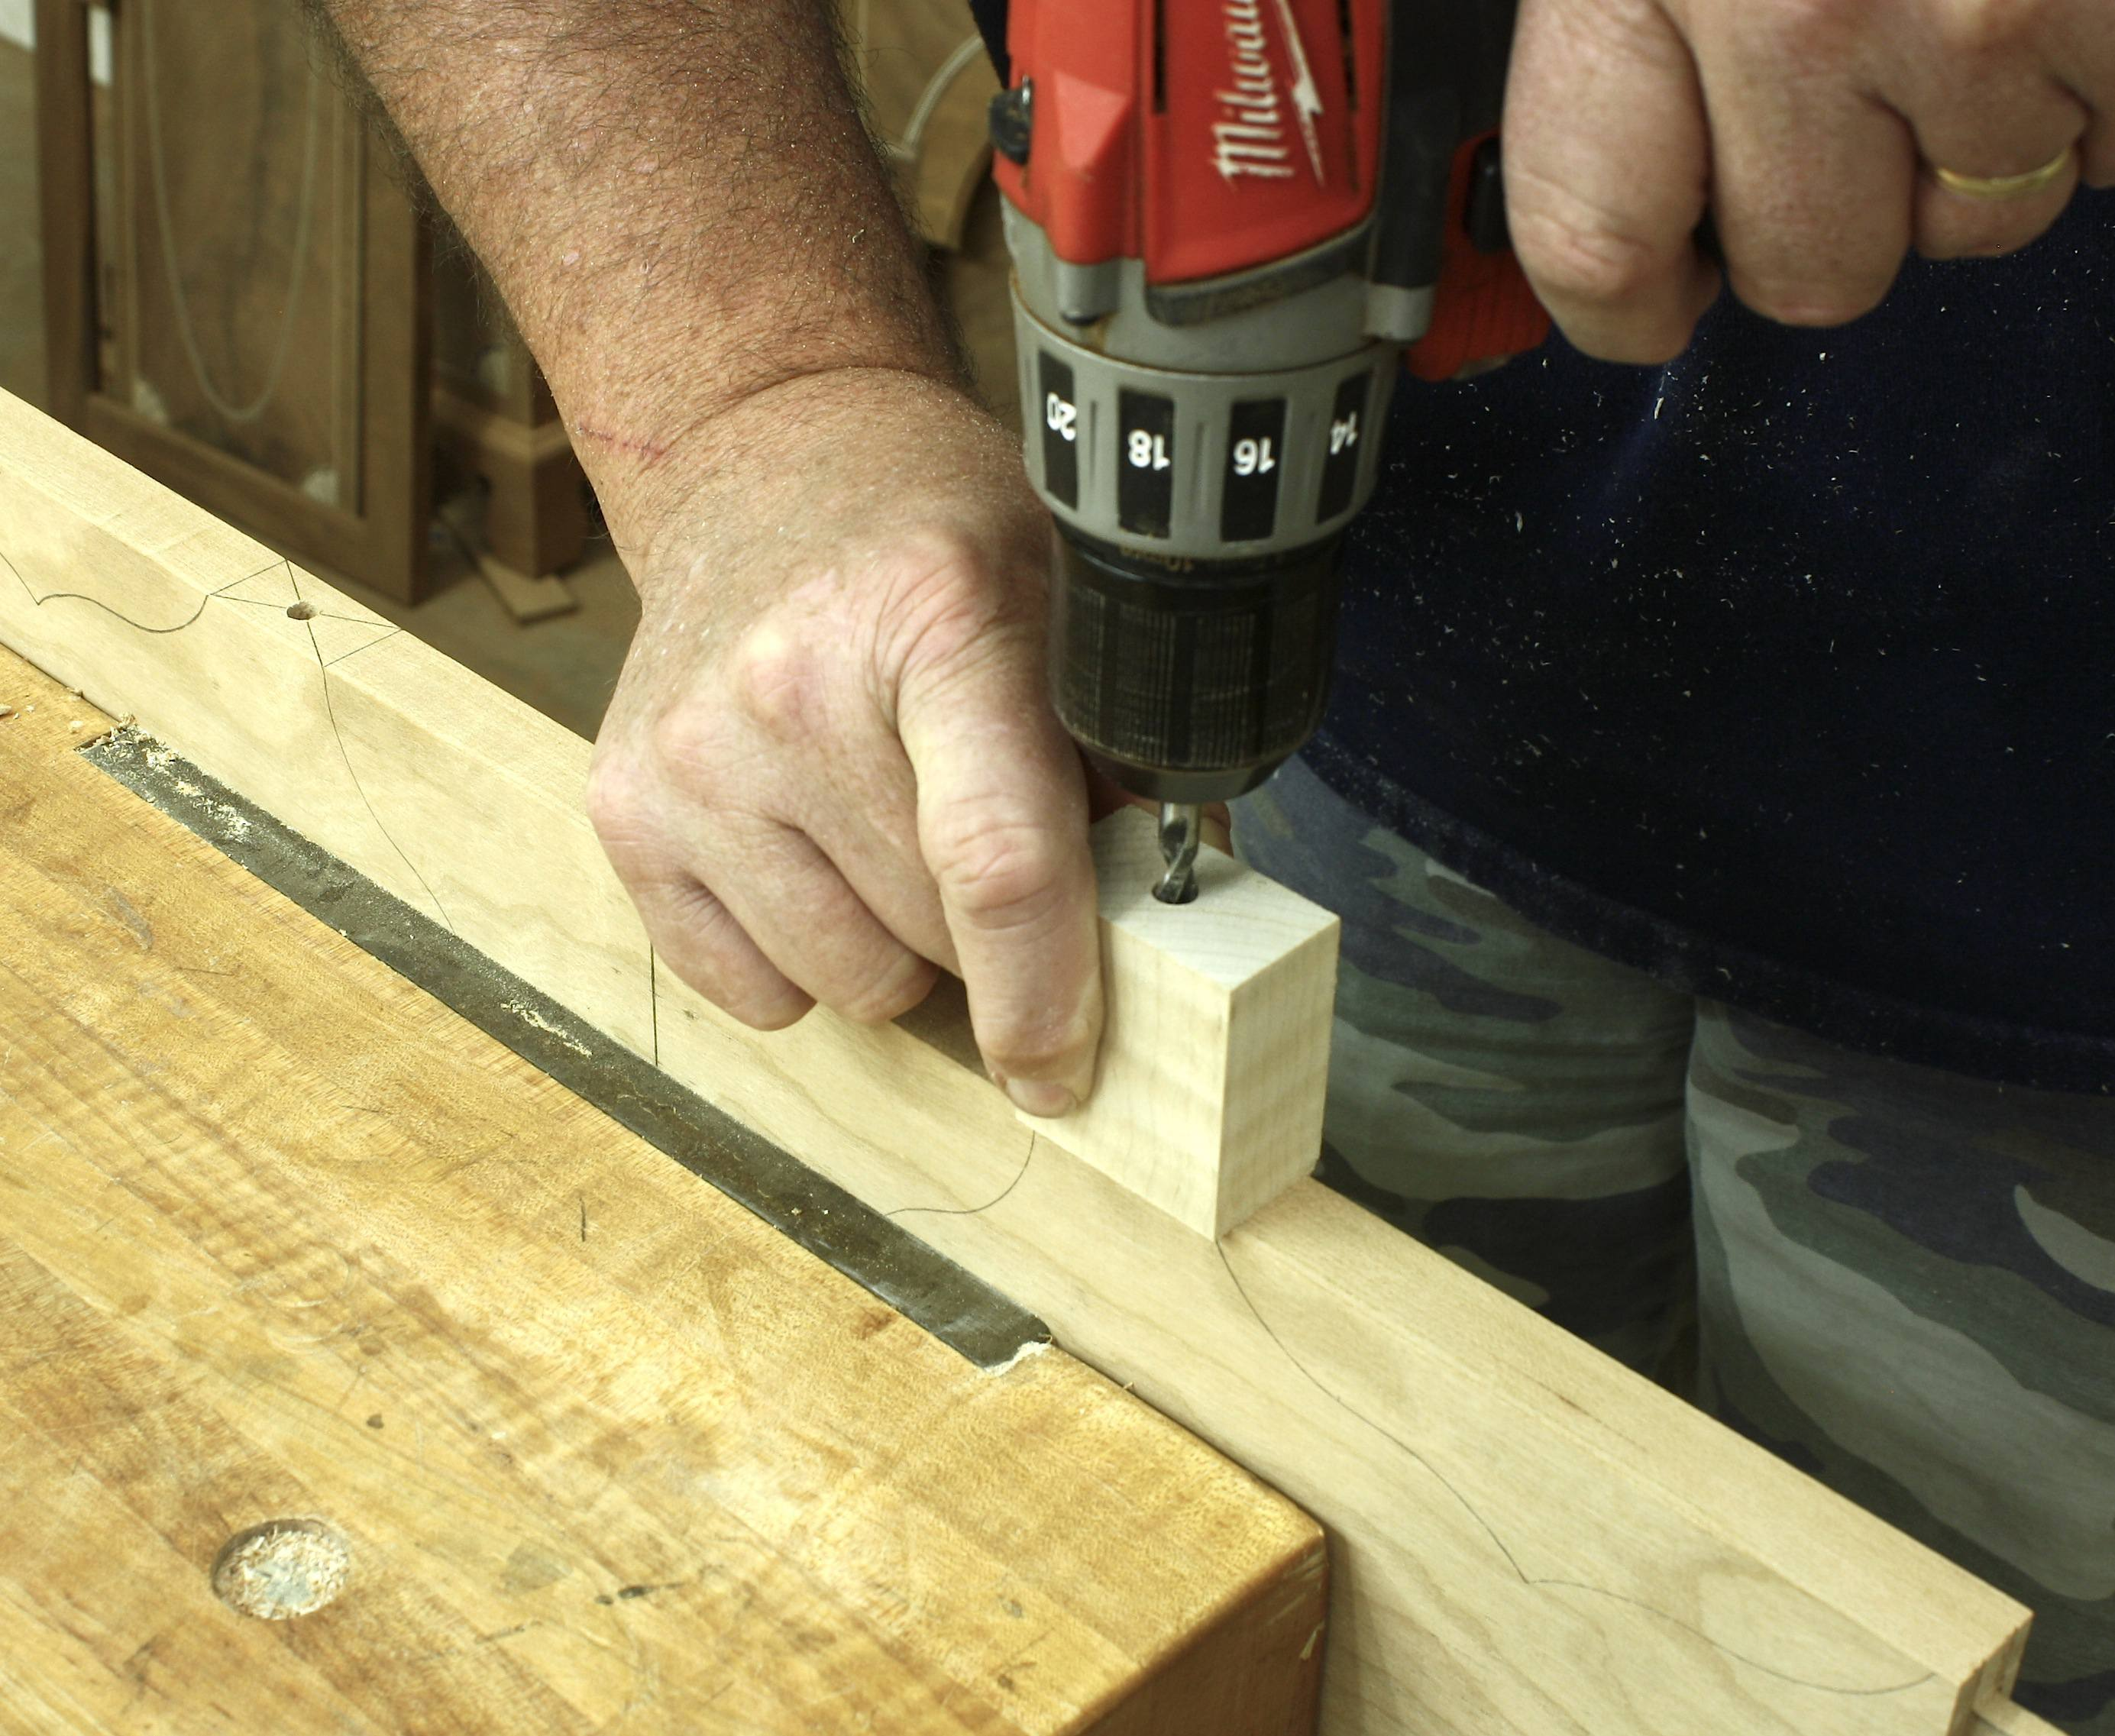 how to cut deadbolt hole without drill